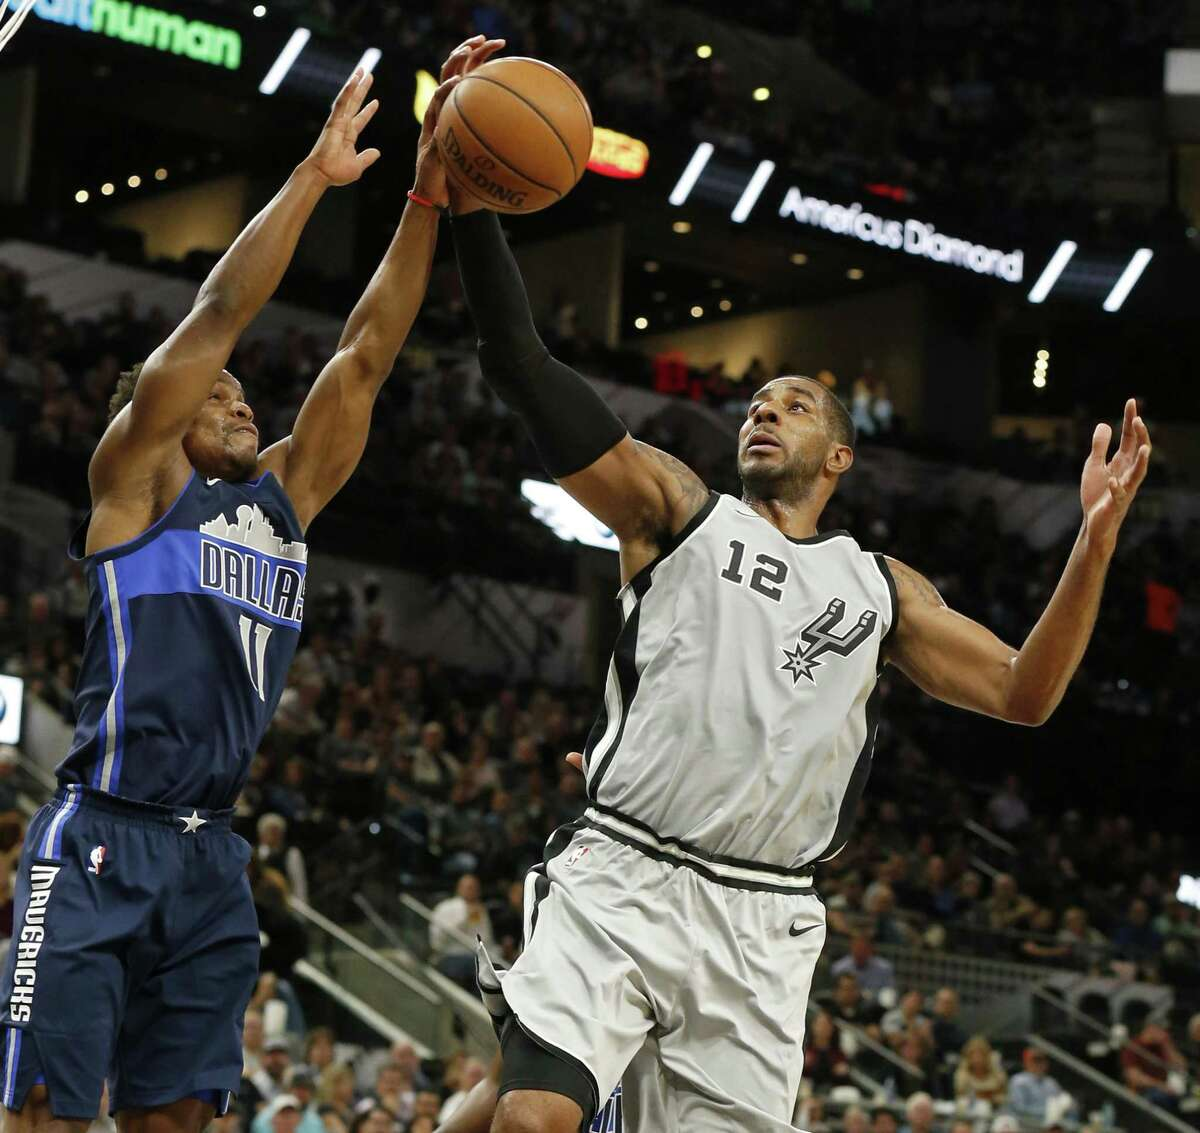 Dallas Mavericks Yogi Ferrell and San Antonio Spurs' LaMarcus Aldridge grab for a rebound during first half action Monday Nov. 27, 2017 at the AT&T Center.